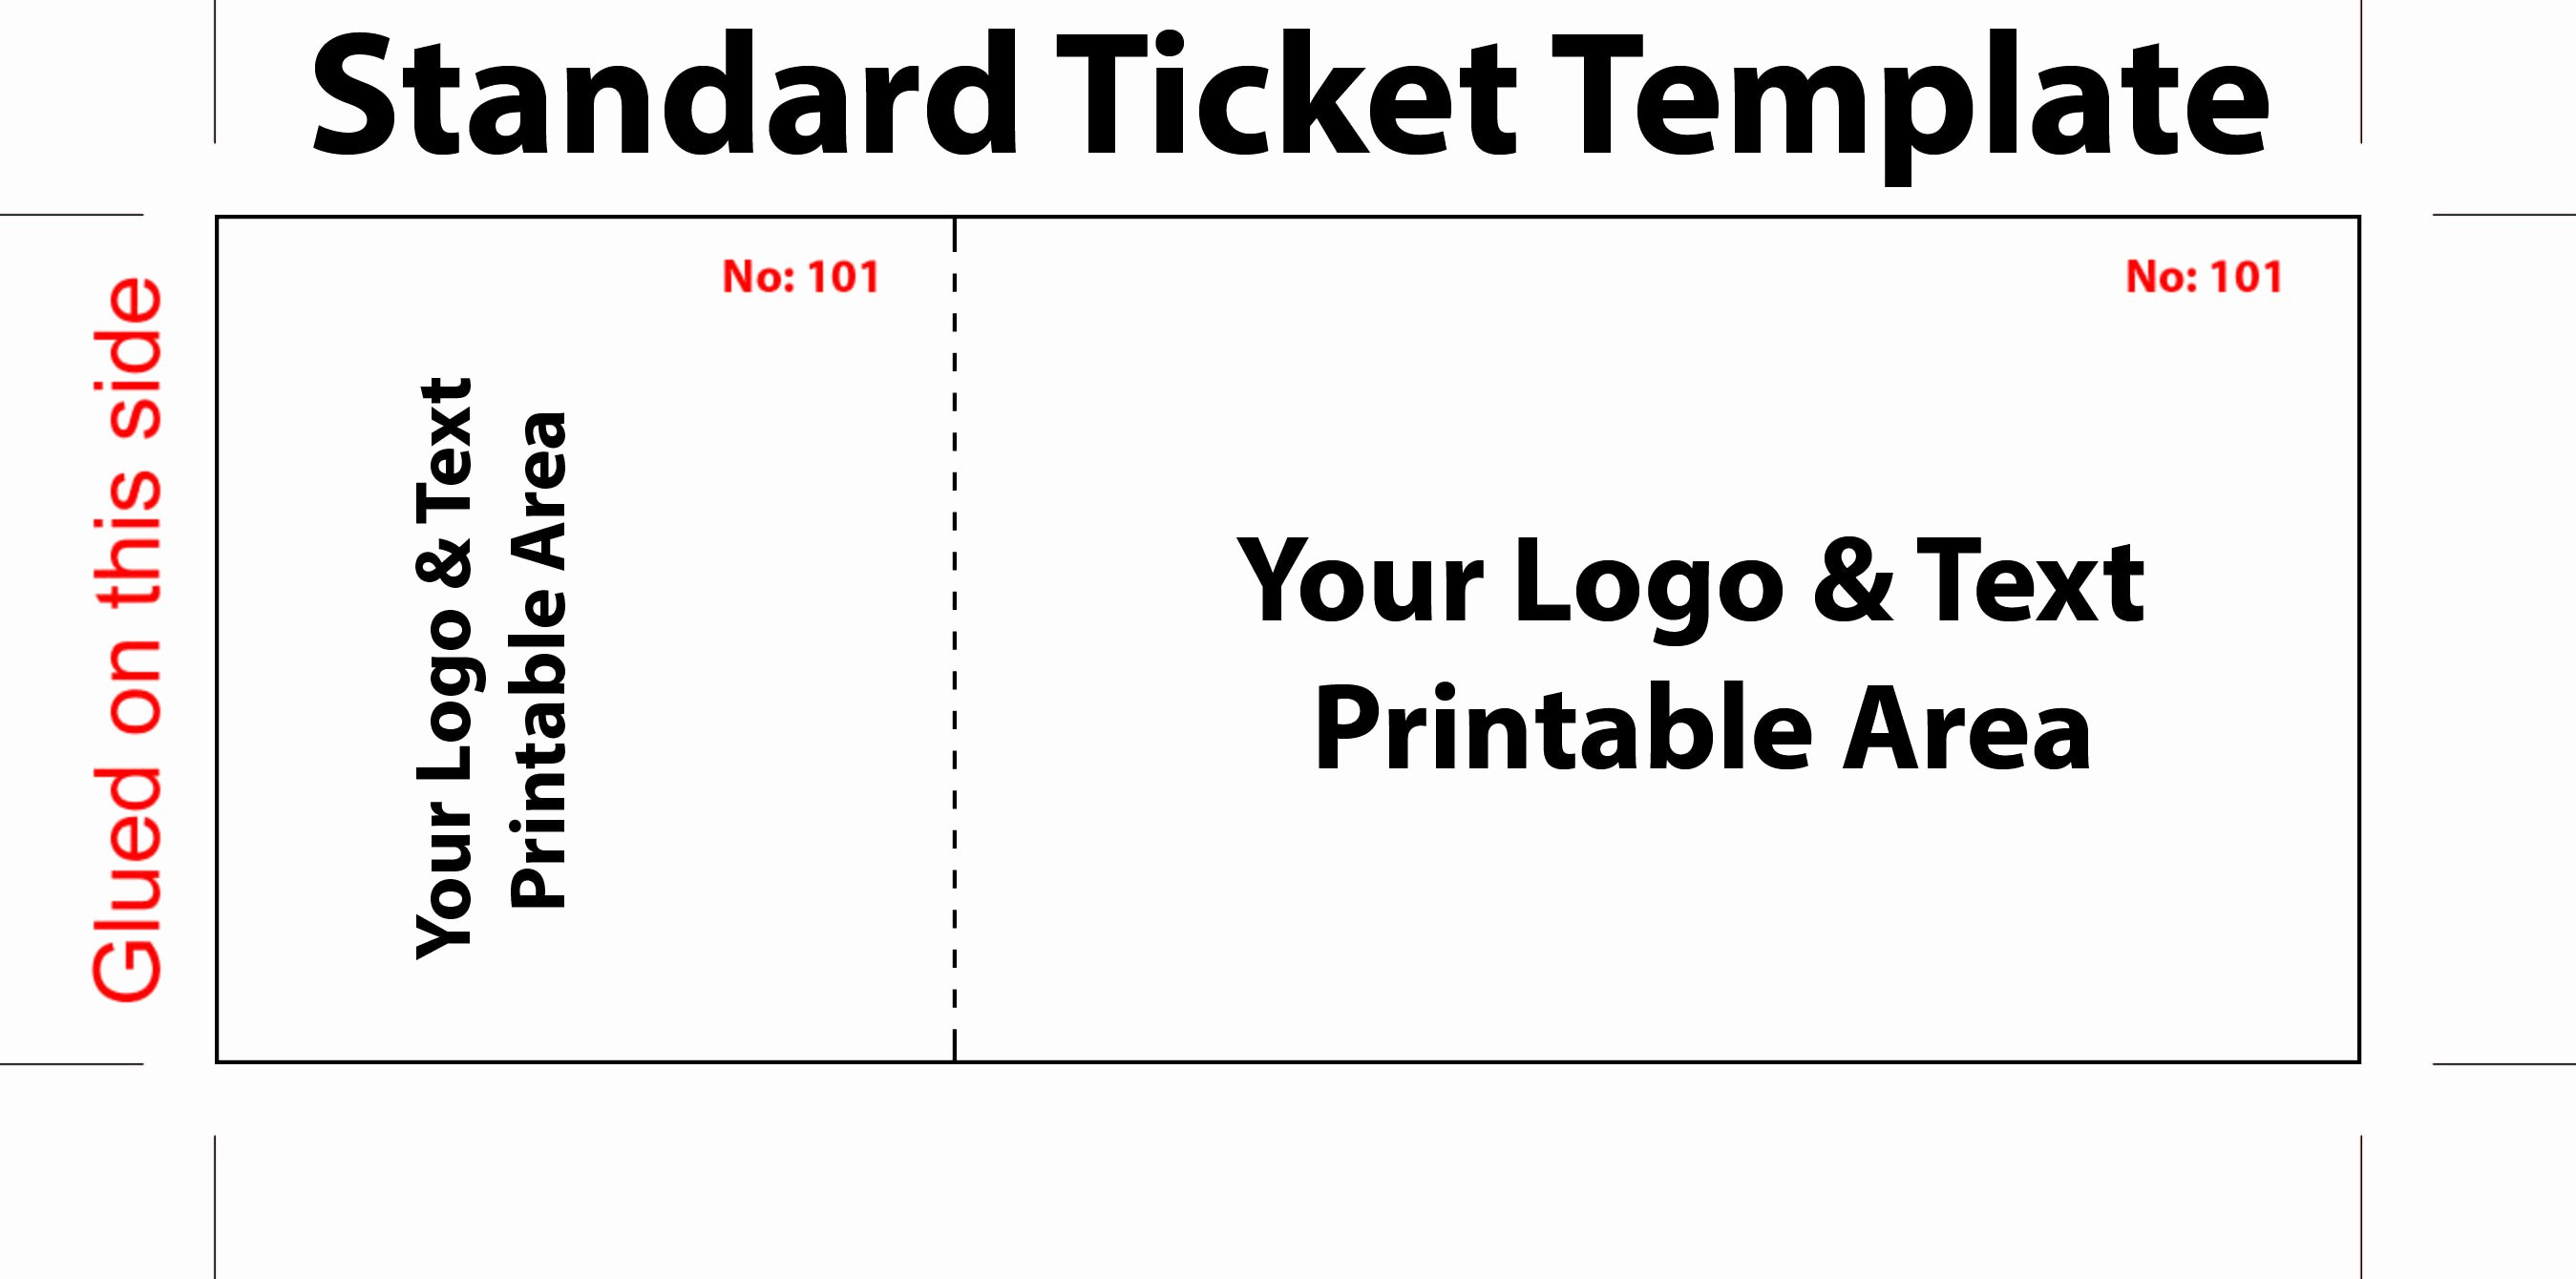 Free Movie Ticket Template for Word Elegant Free Editable Standard Ticket Template Example for Concert